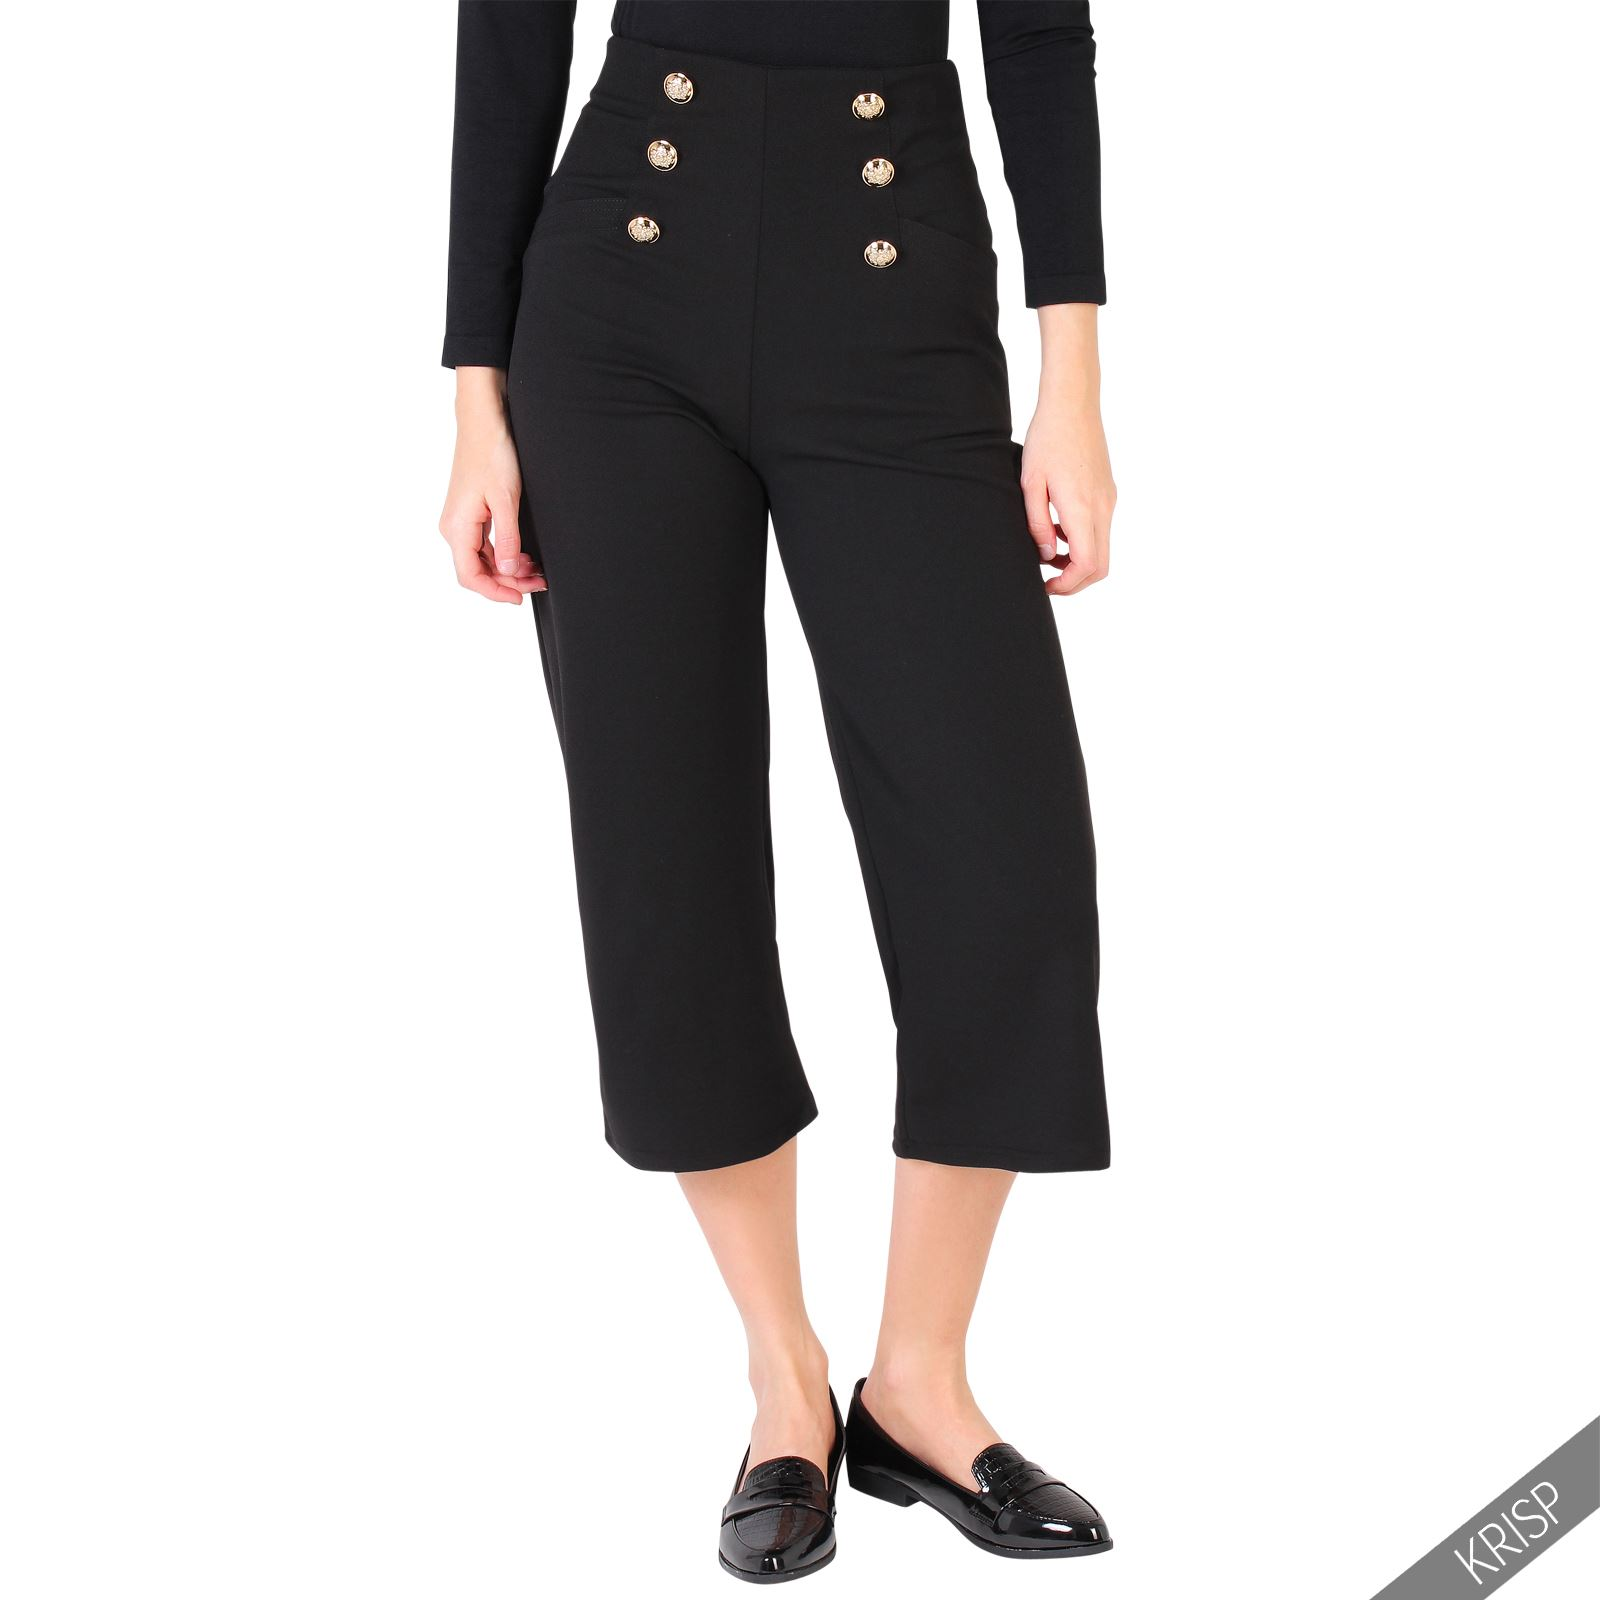 damen high waist culottes 3 4 hosen marine matrosen hoher. Black Bedroom Furniture Sets. Home Design Ideas